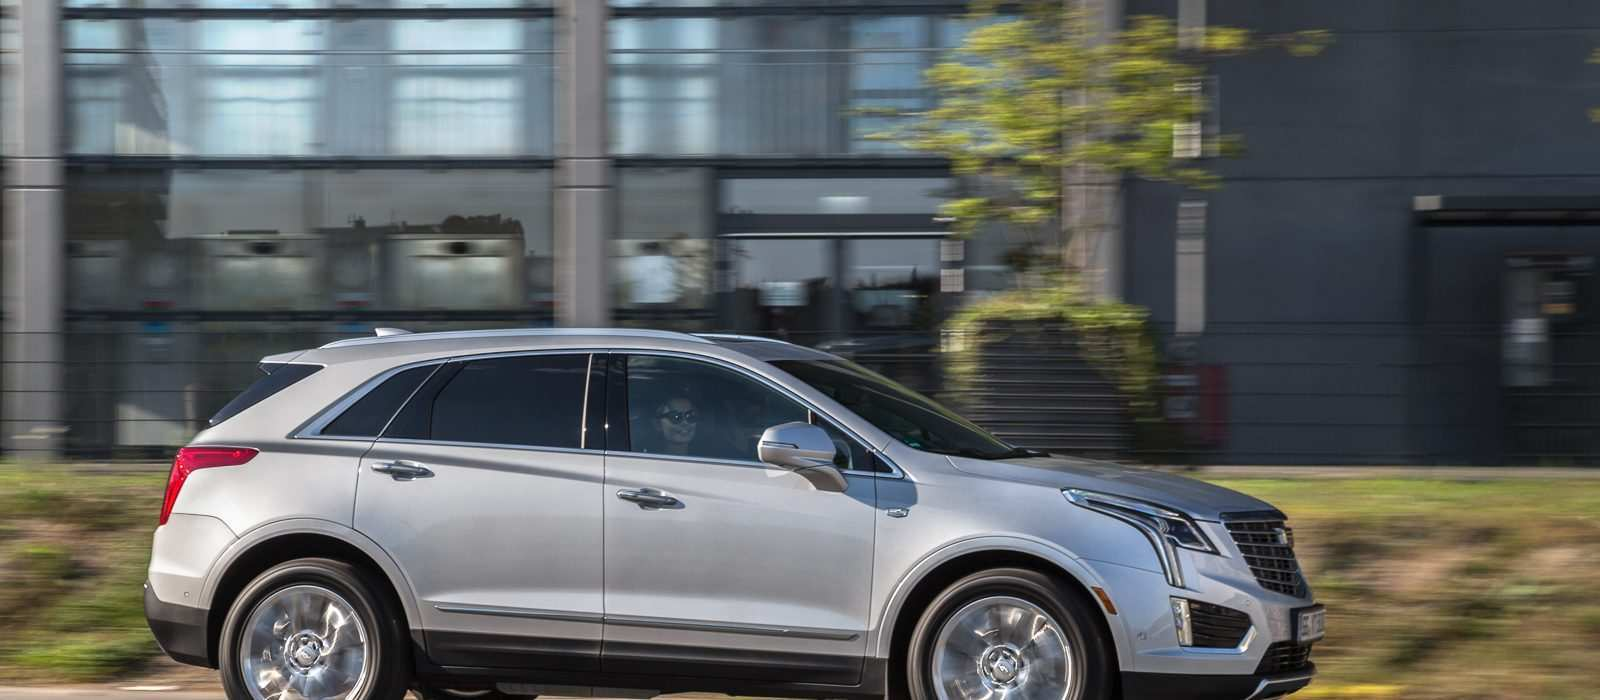 52 The Best 2019 Cadillac XT5 Photos